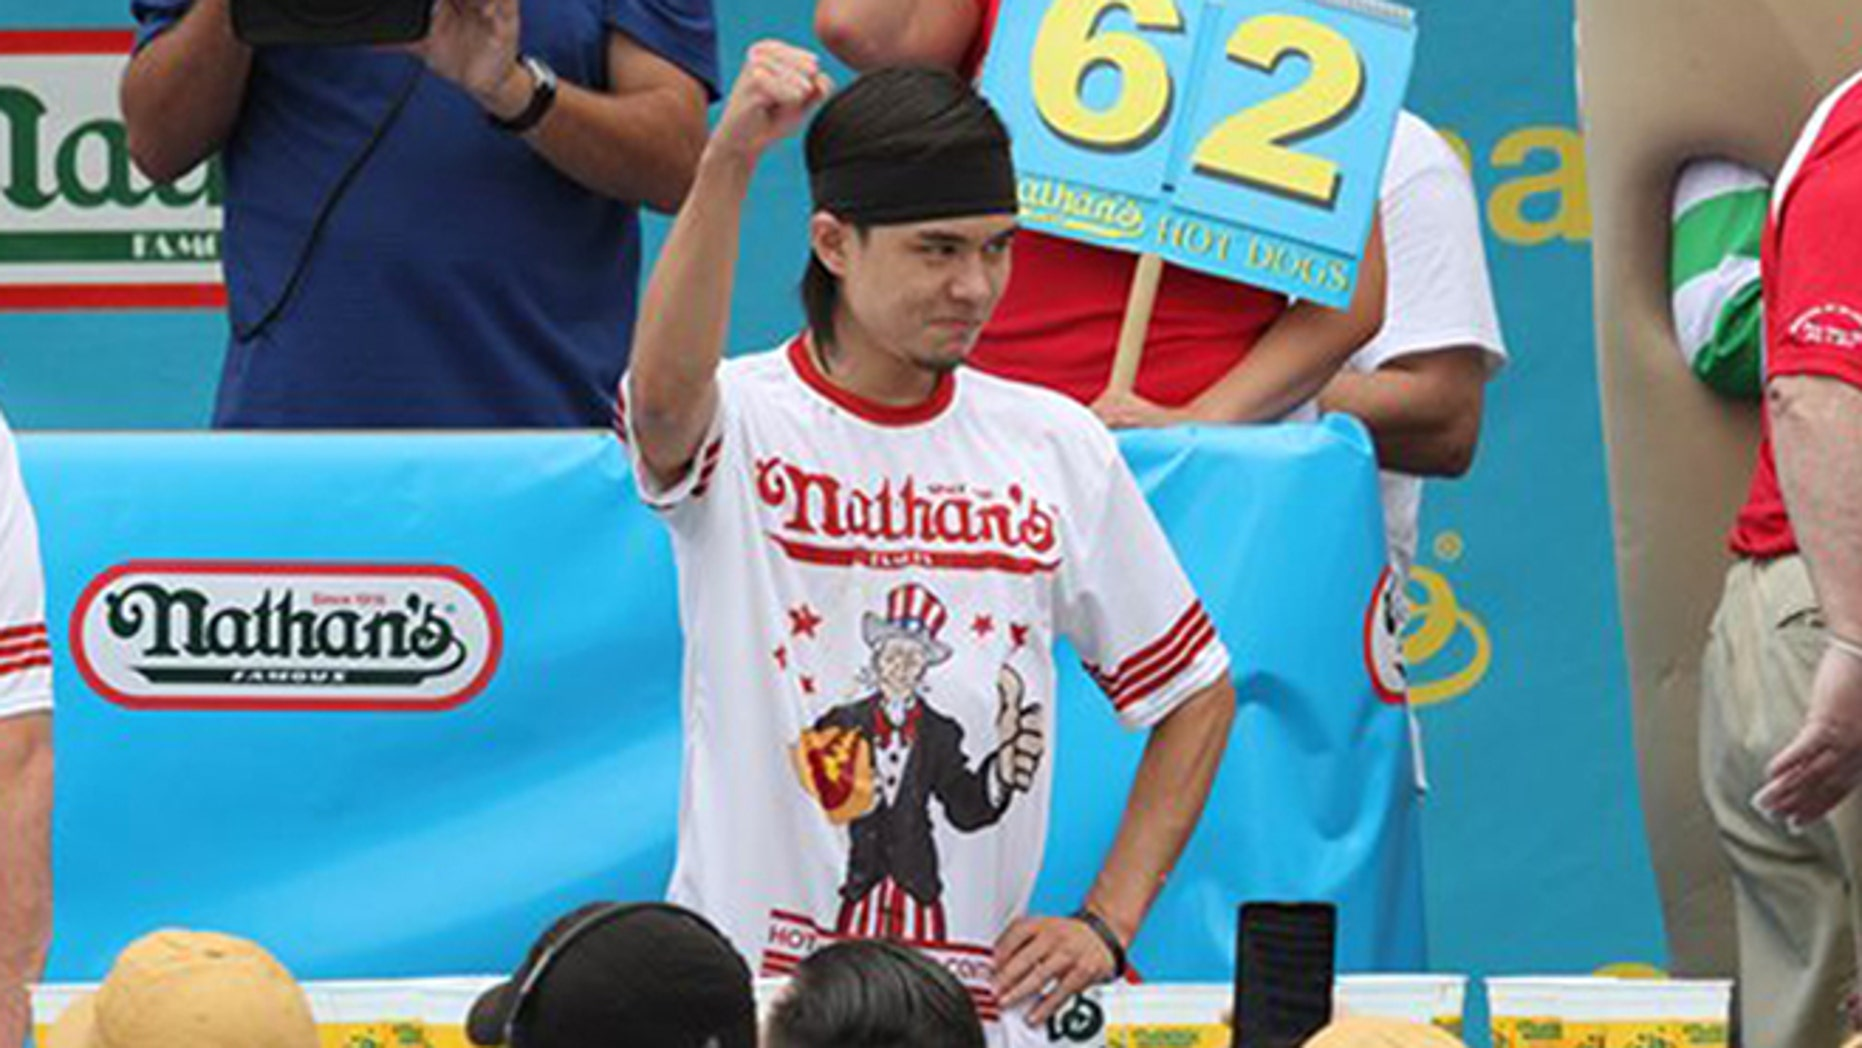 Matt Stonie gestures after winning Nathan's Famous Fourth of July International Hot Dog Eating Contest men's competition Saturday July 4, 2015 in the Coney Island section in the Brooklyn borough of New York. (AP Photo/Tina Fineberg)